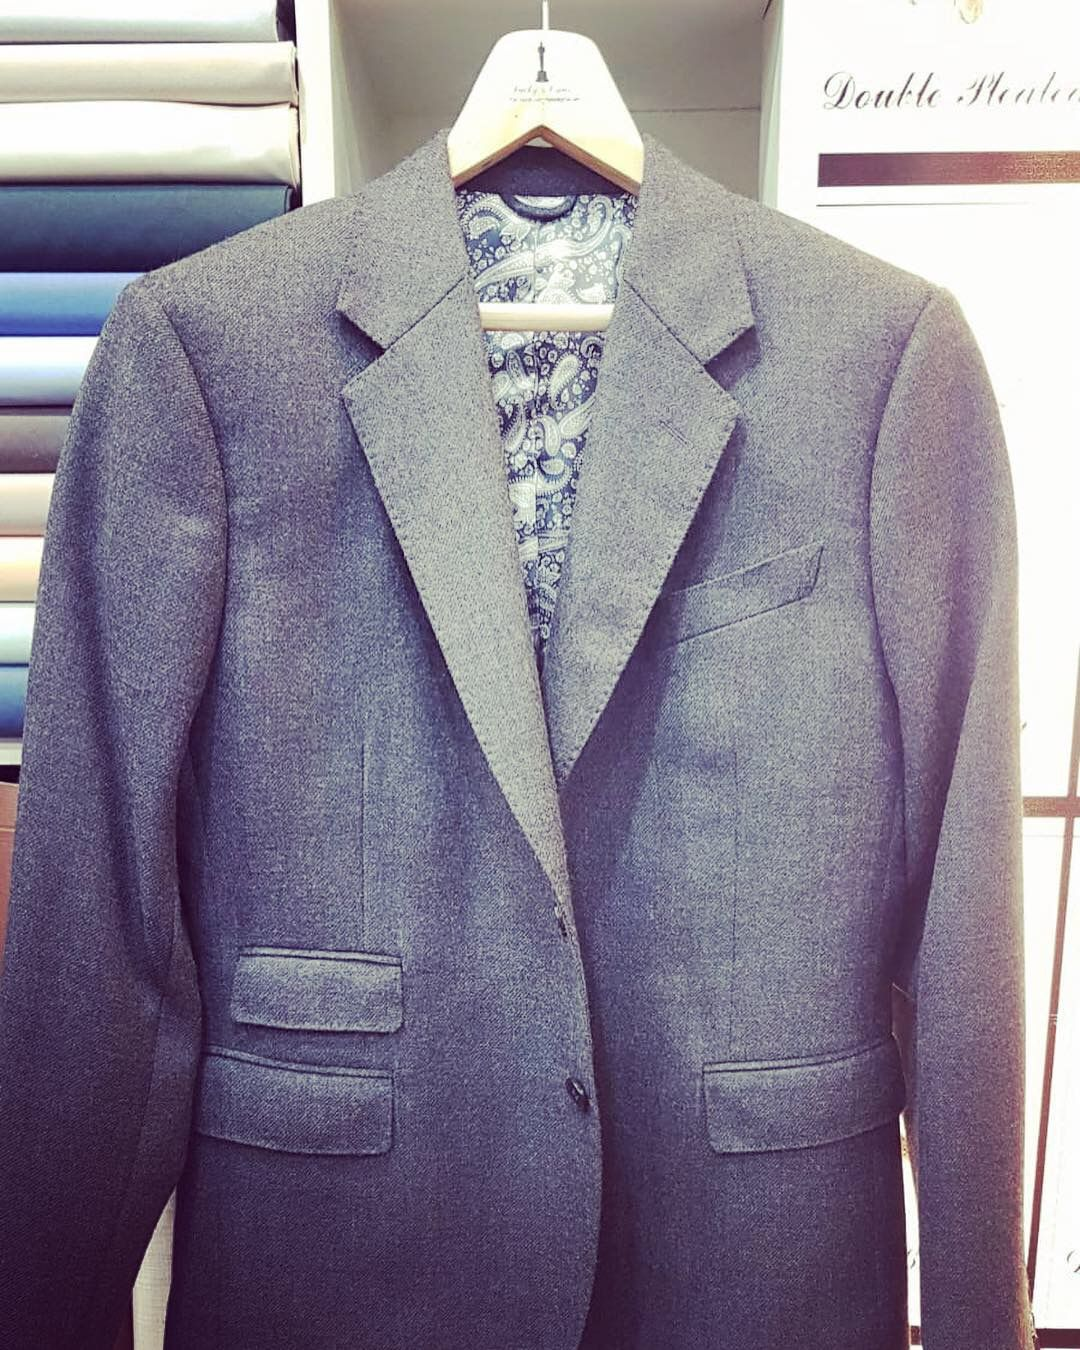 e25c9edd1c Business Casual with a Touch of Style and Sophistication . Merino Tweed  Jacket. Fancy lining